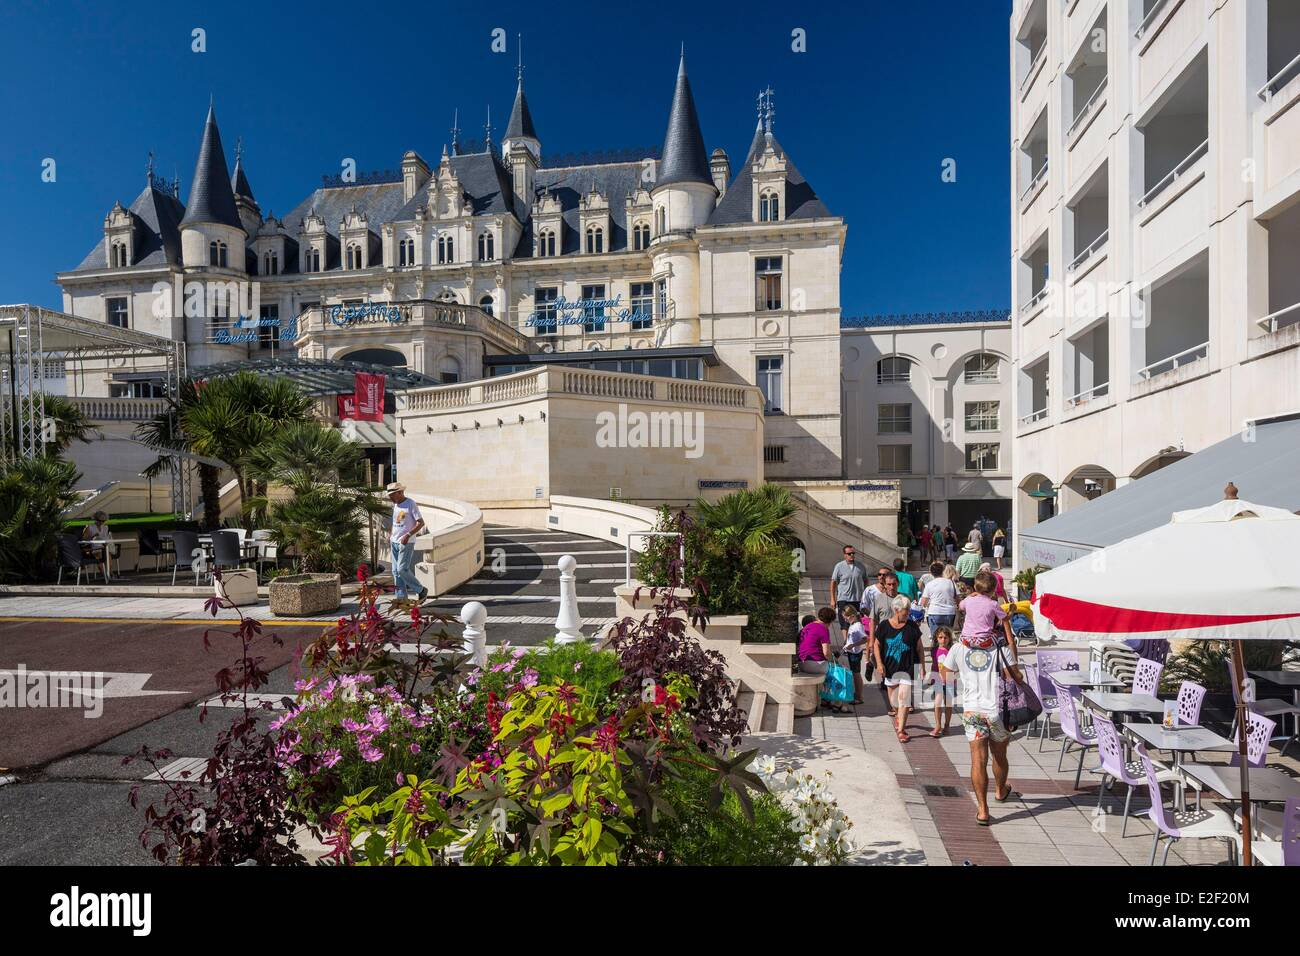 France, the Bassin of Arcachon, Arcachon, the casino - Stock Image